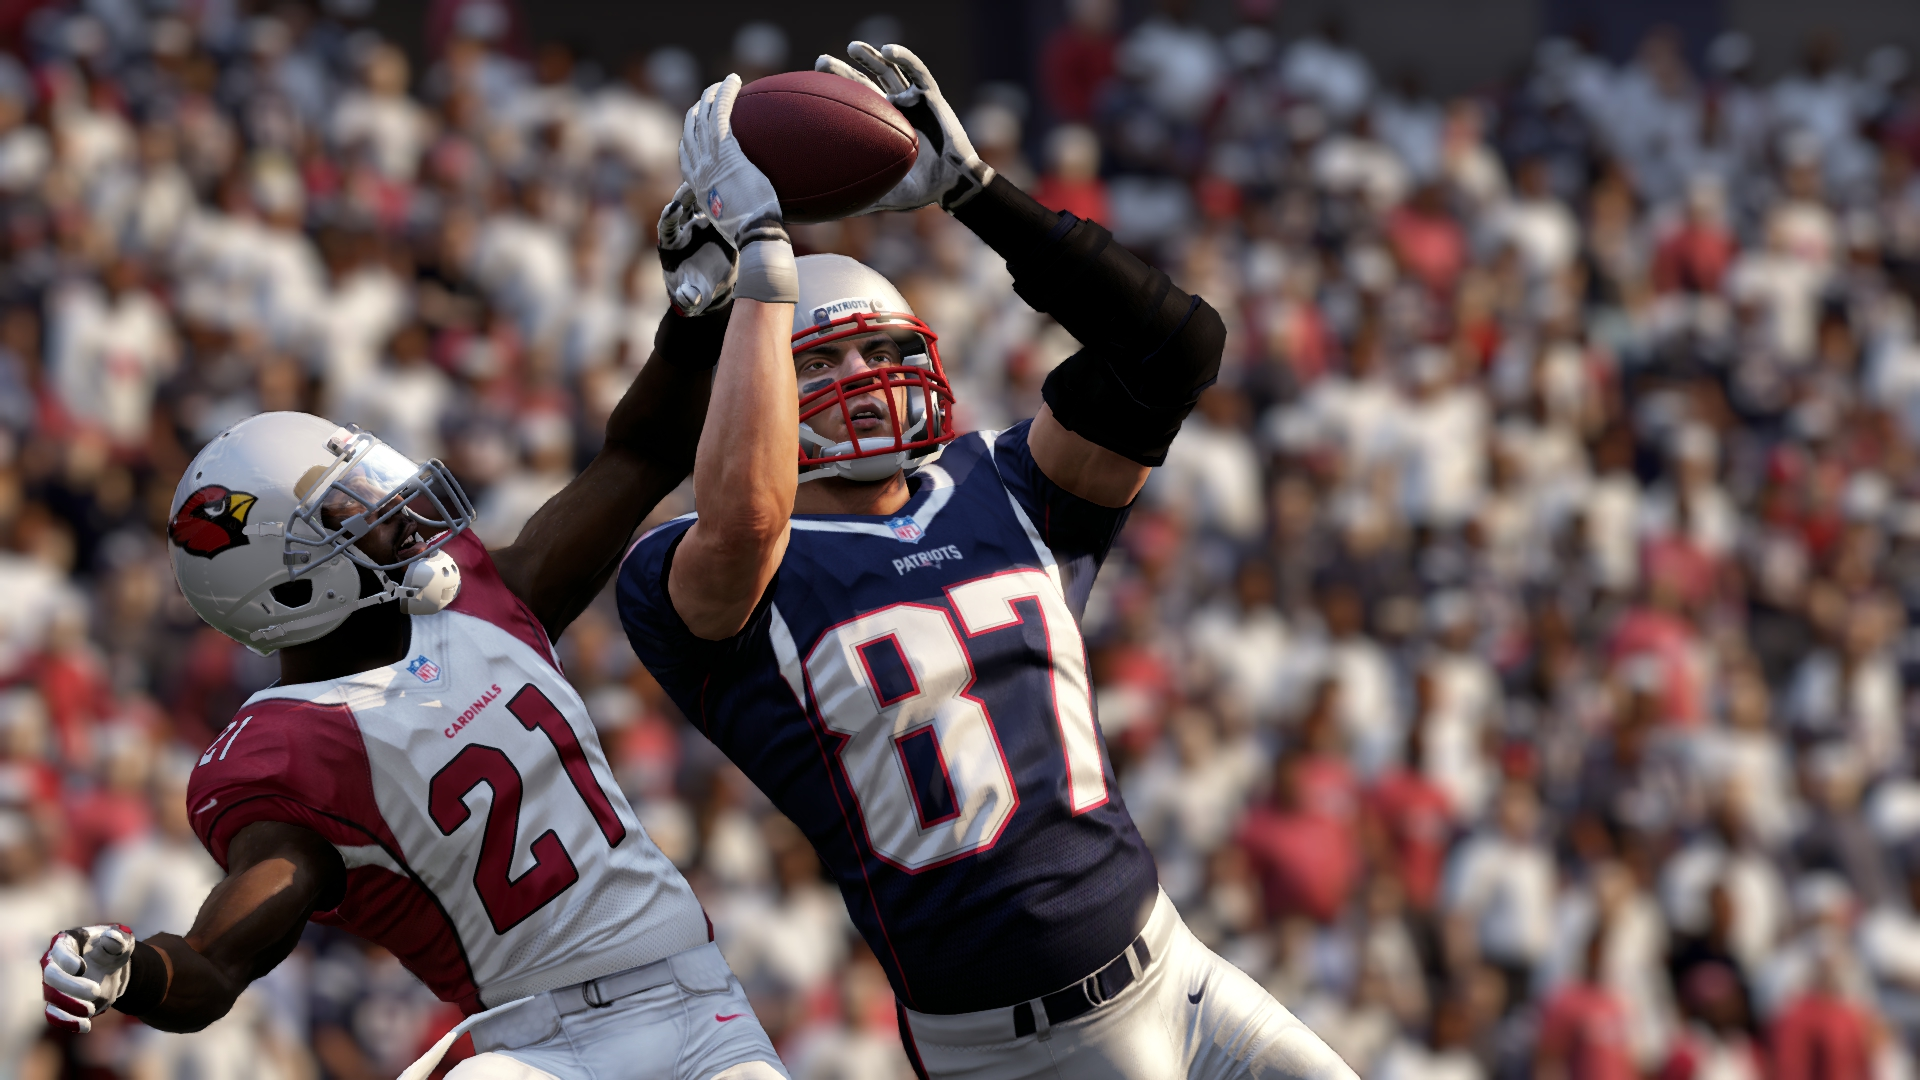 EA Sports preview photo